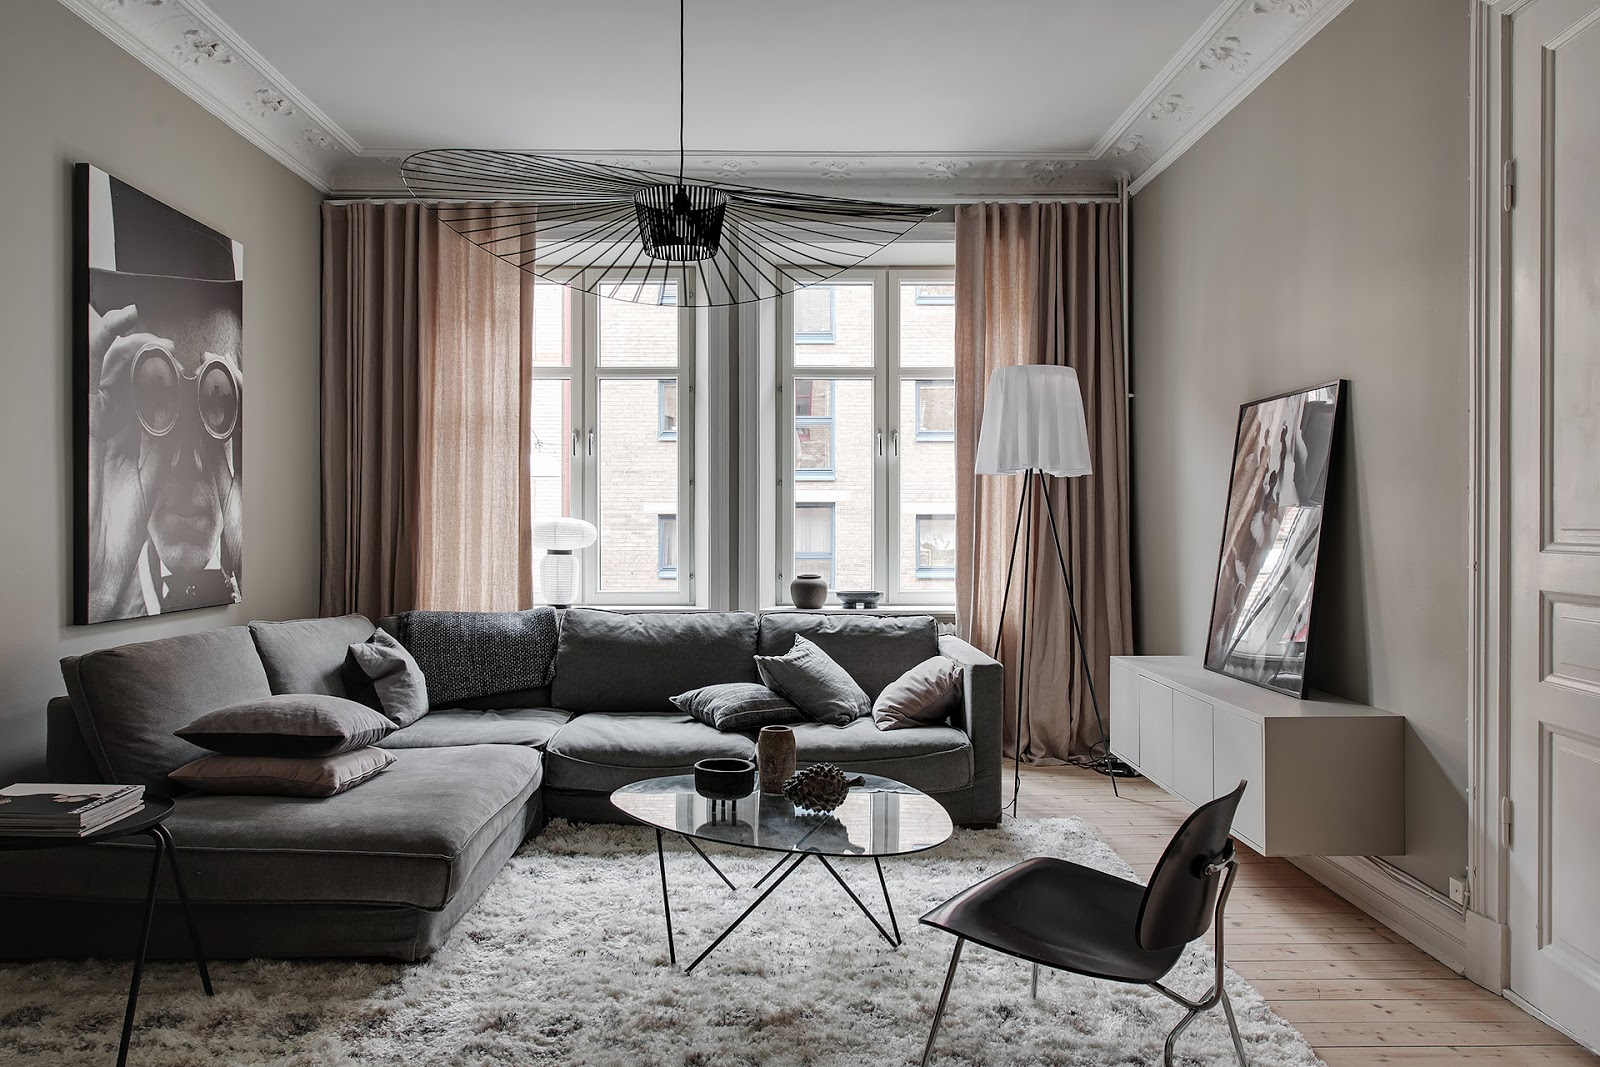 Appartamento scandinavo in grigio beige | ARC ART blog by Daniele Drigo